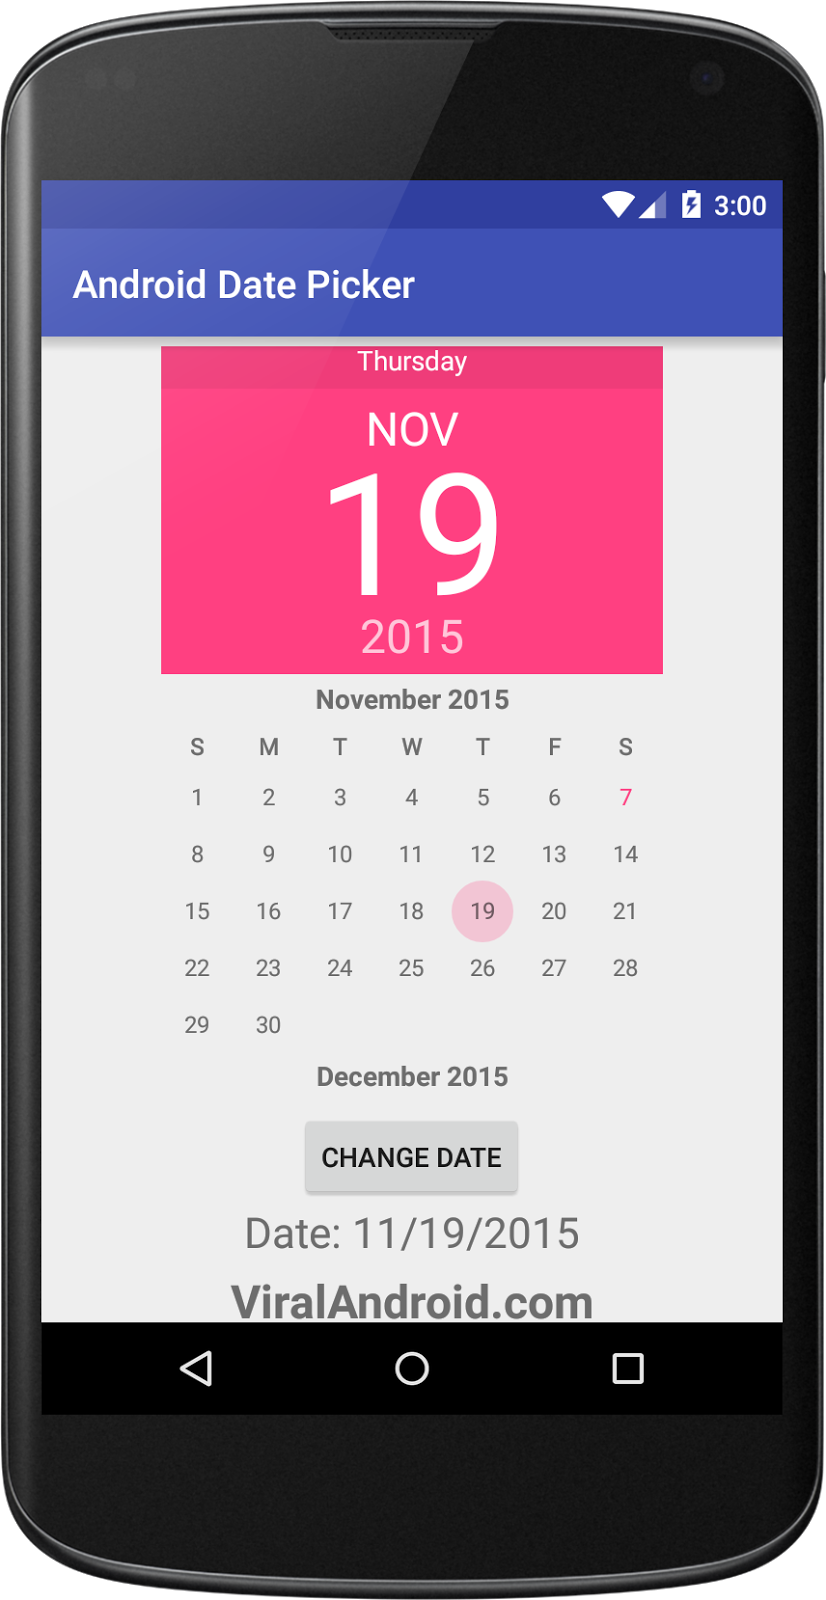 Android Date Picker Example | Viral Android – Tutorials